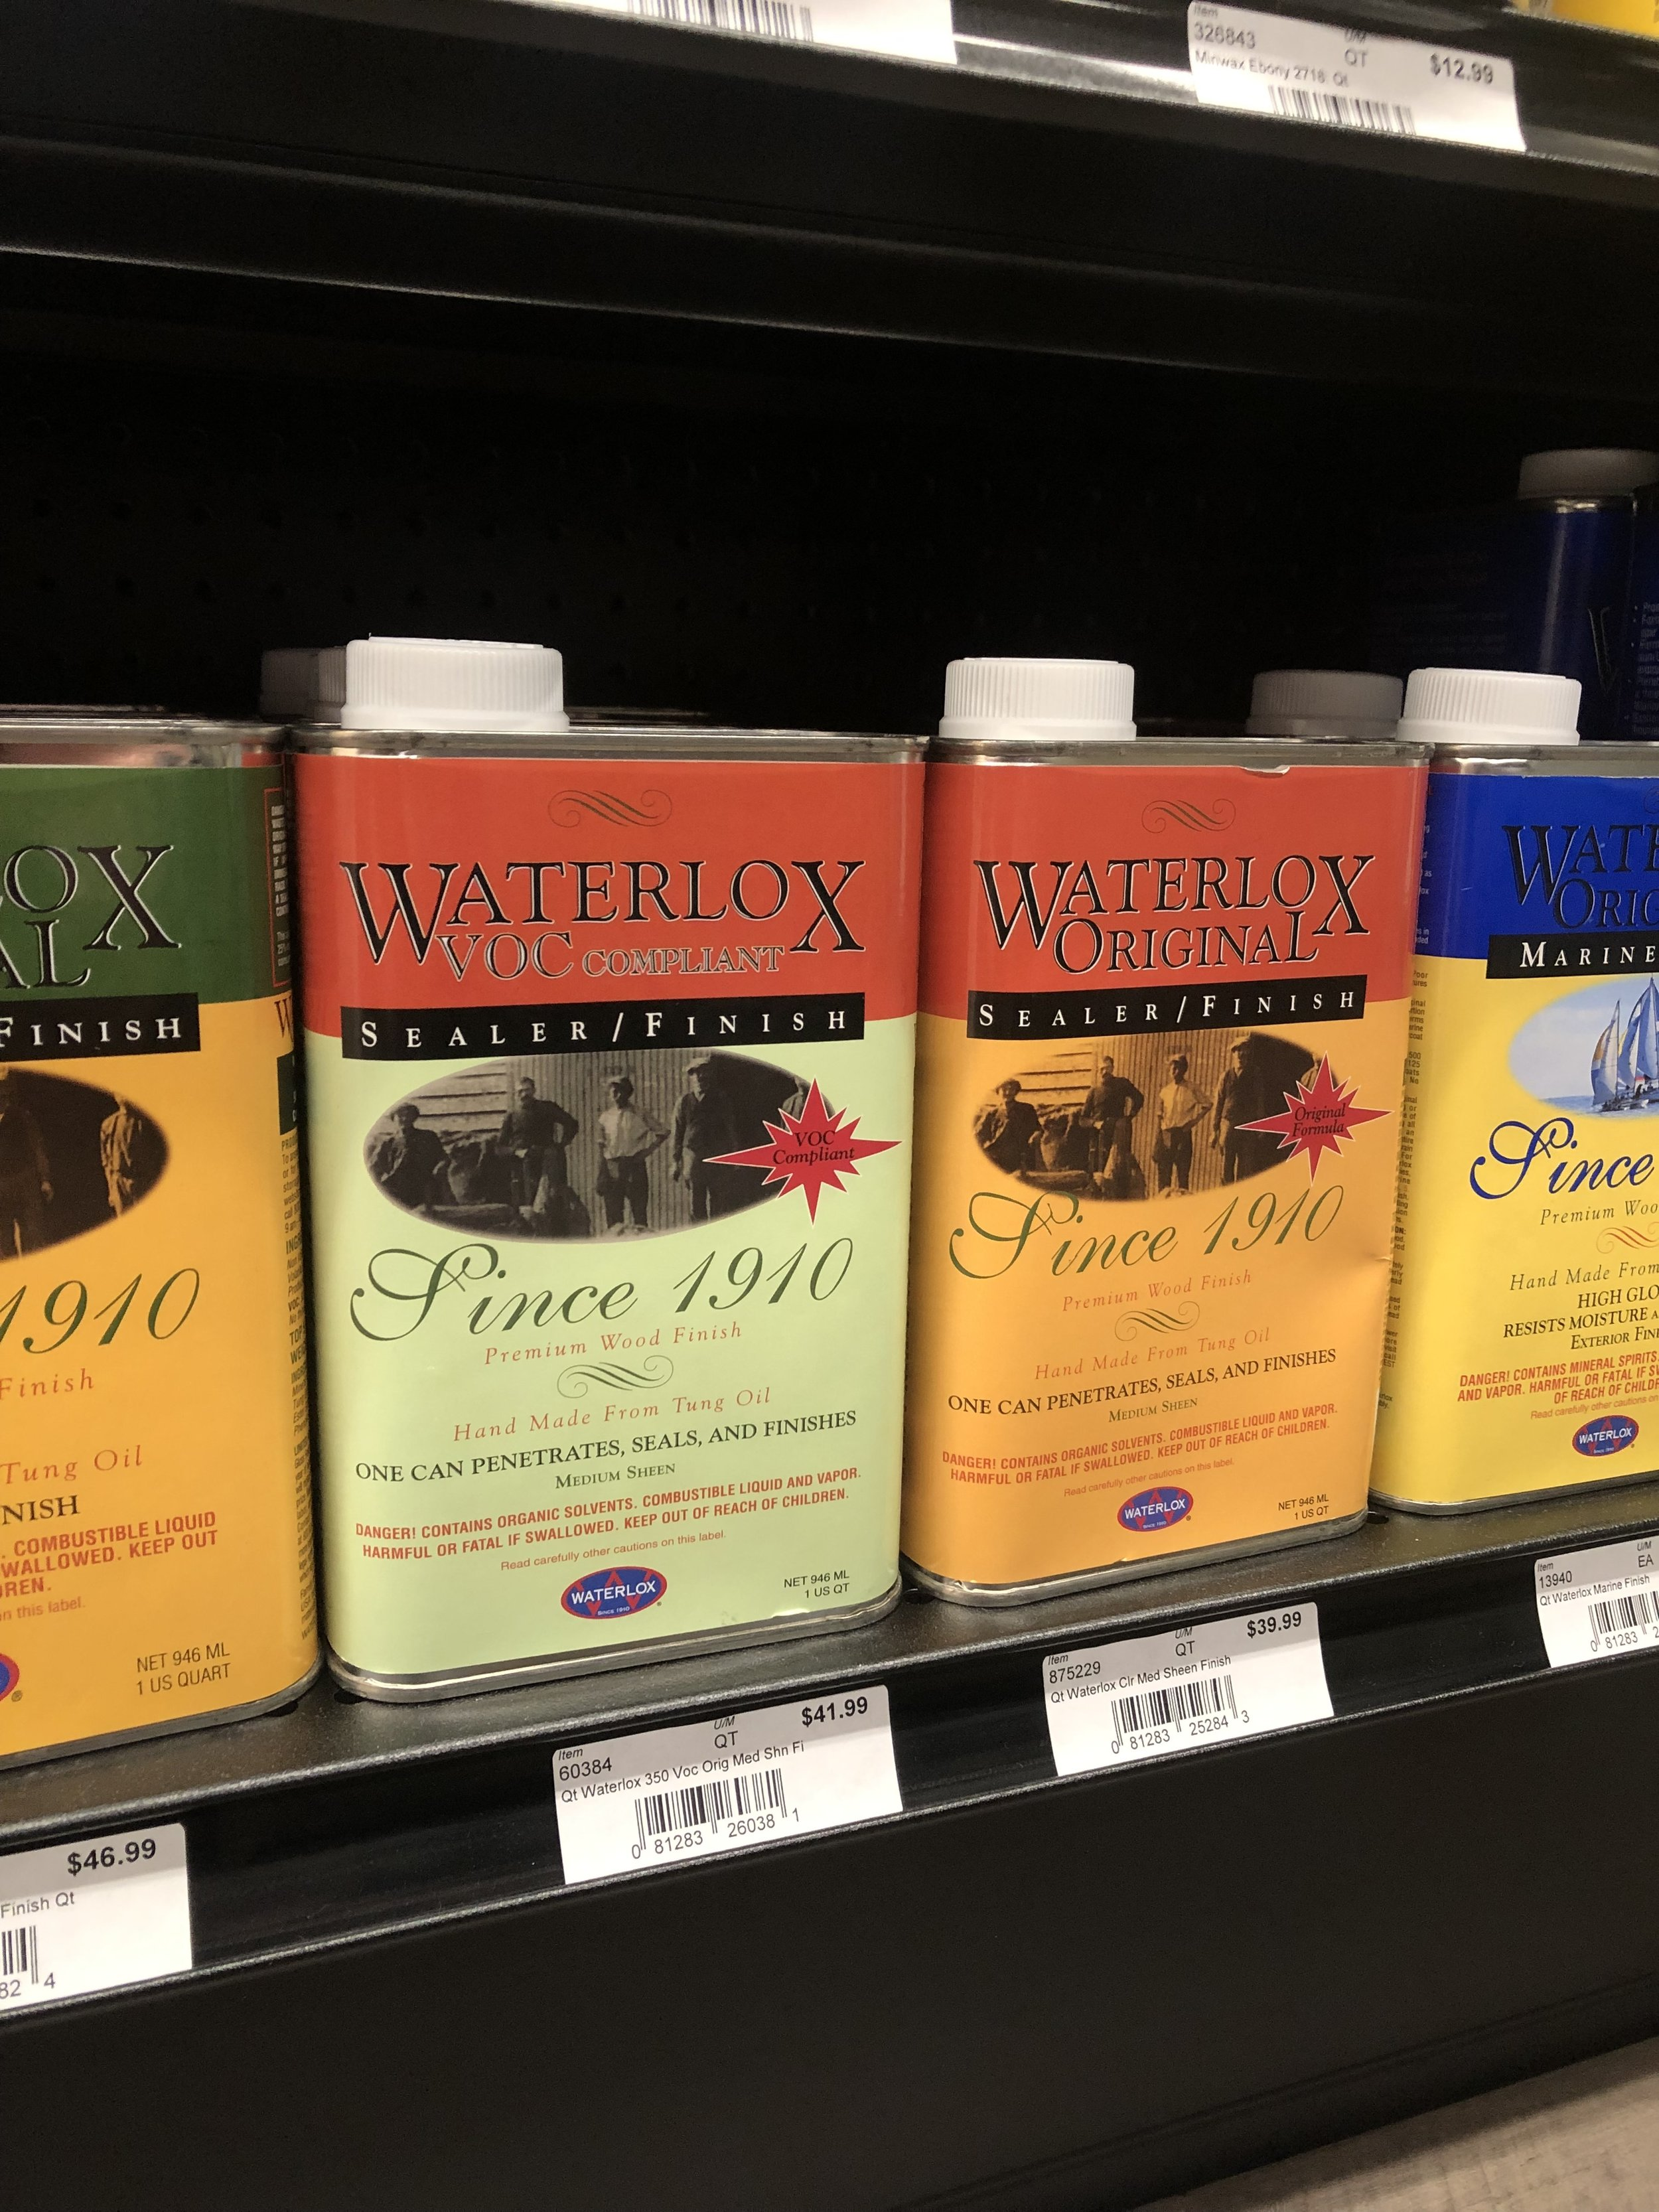 Waterlox  Waterlox sealers and finishes protect and enhance any wood including floors, countertops, furniture, and specialty woodworking. Waterlox has also developed an outdoor formula ideal for boats.